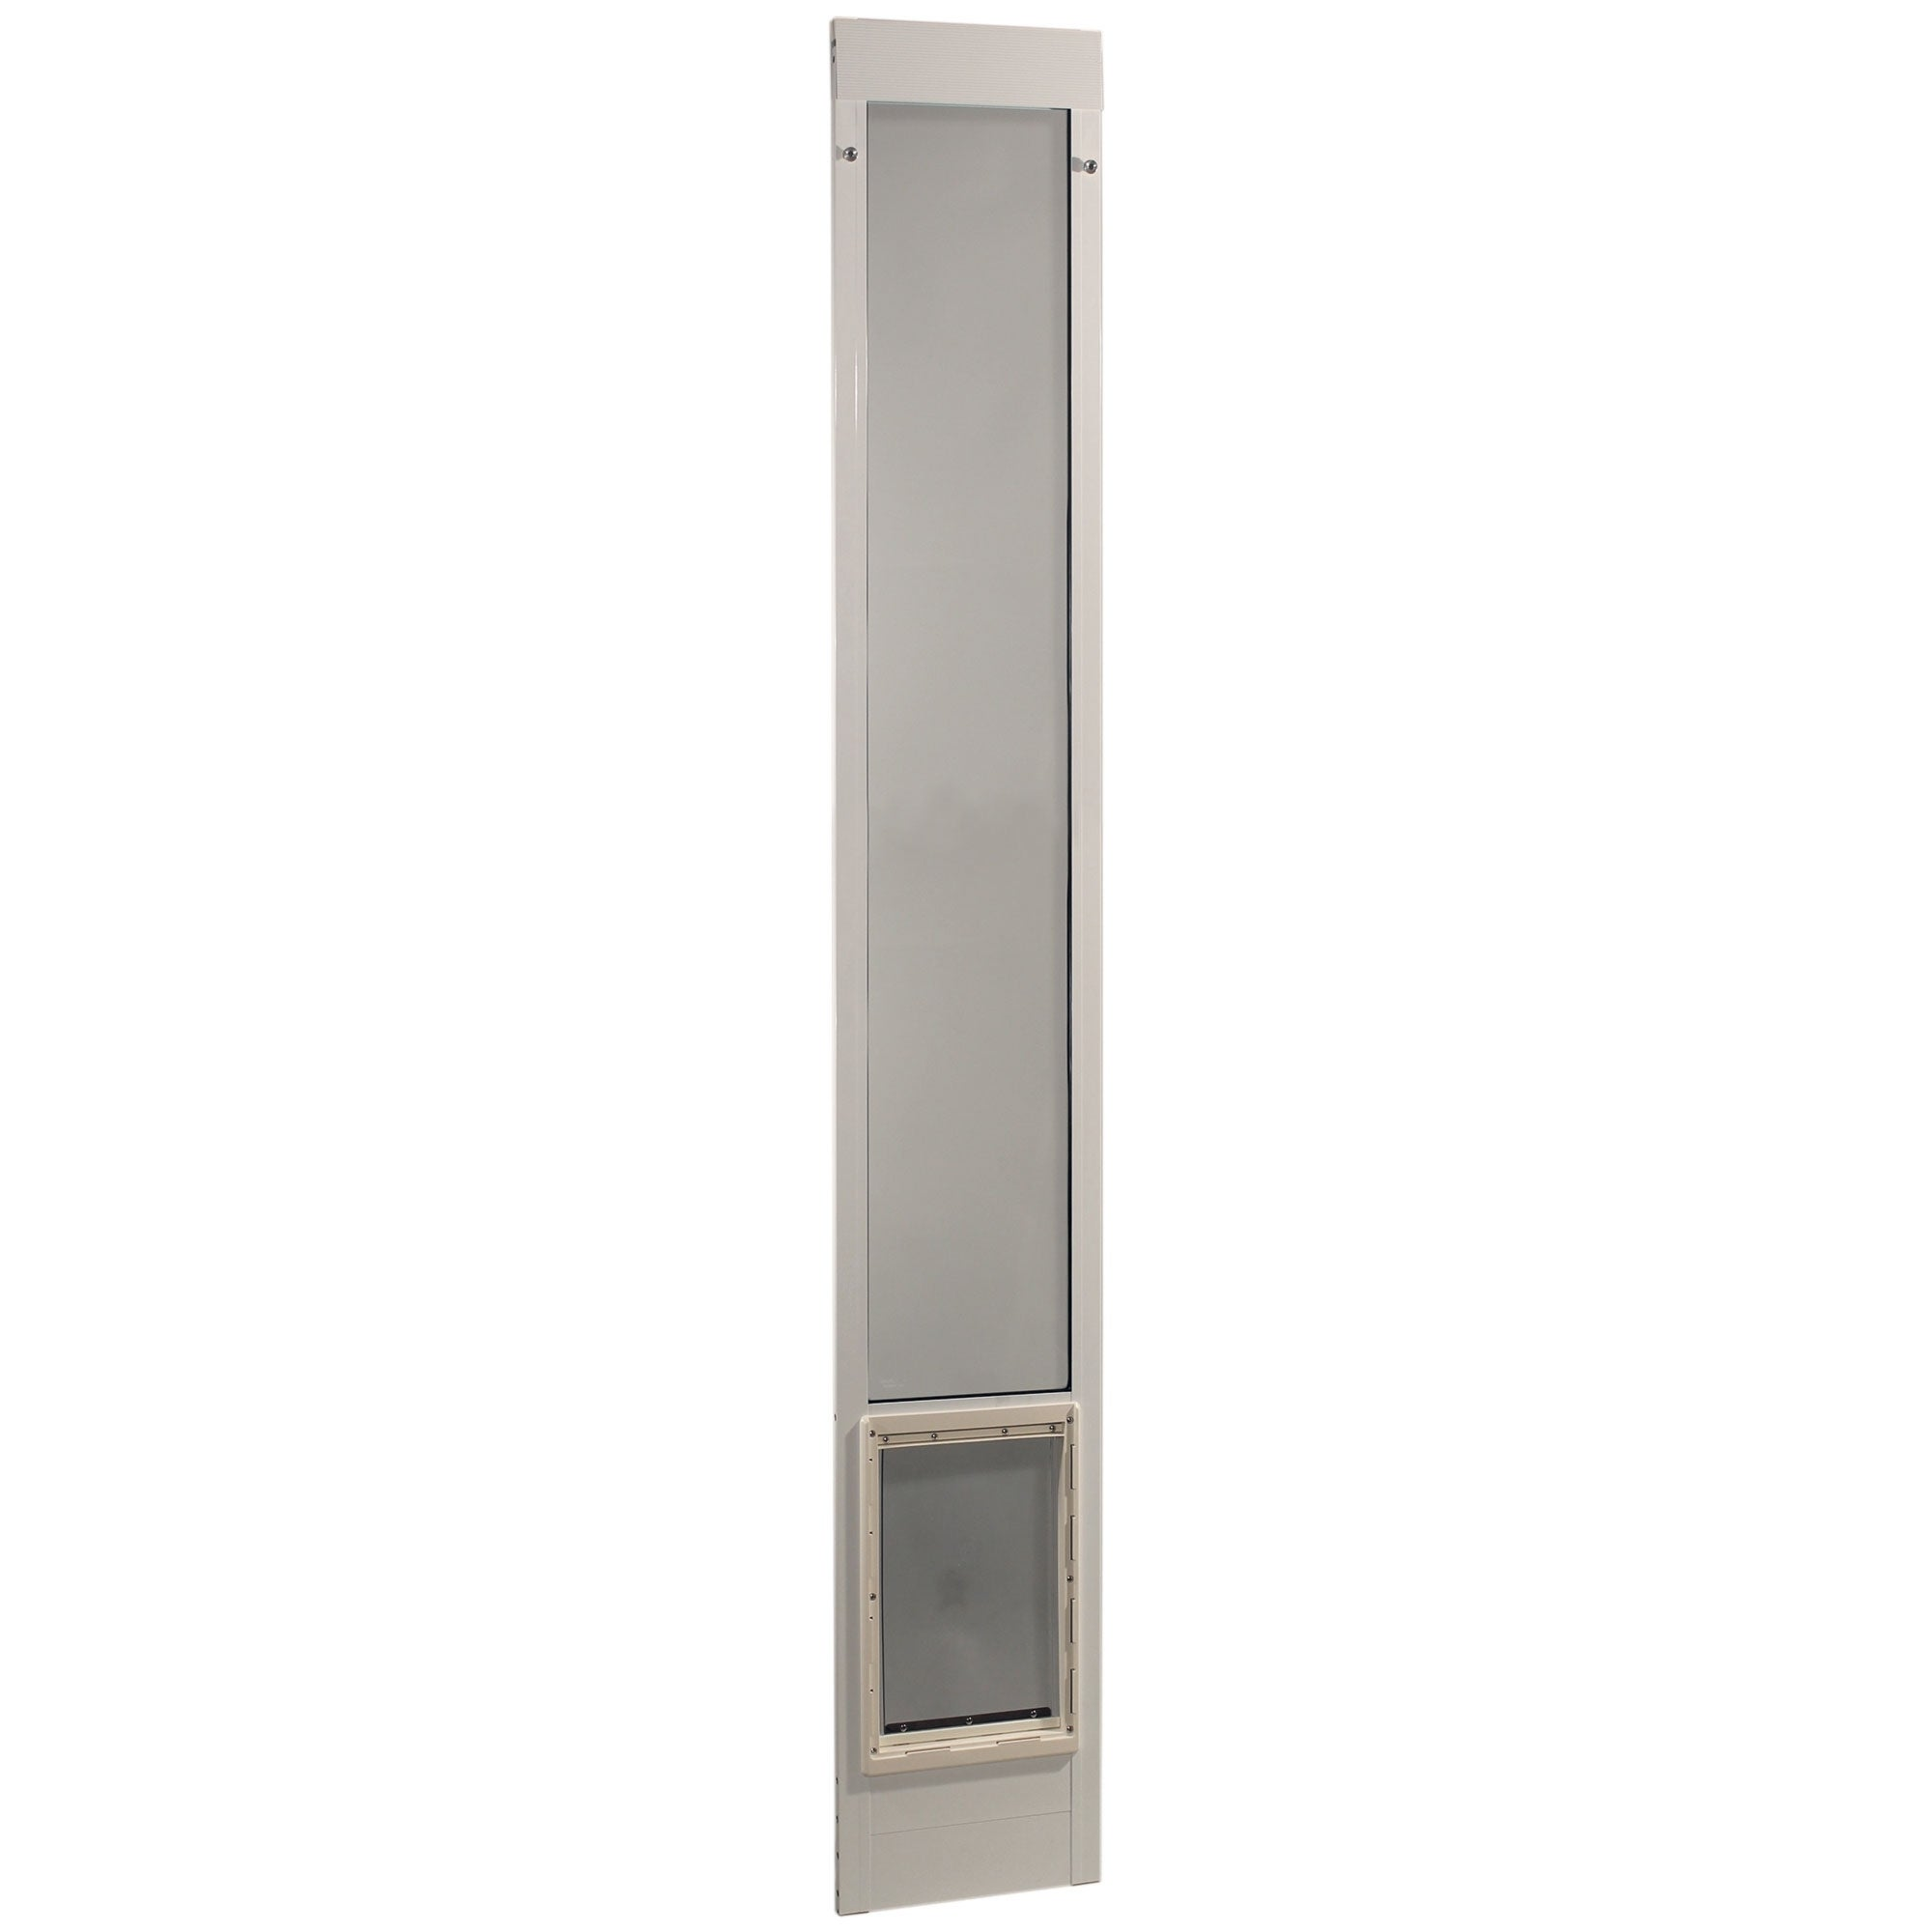 Ideal Pet Products Fast Fit Pet Patio Door Small White 1.88 x 9.5 x 93.75